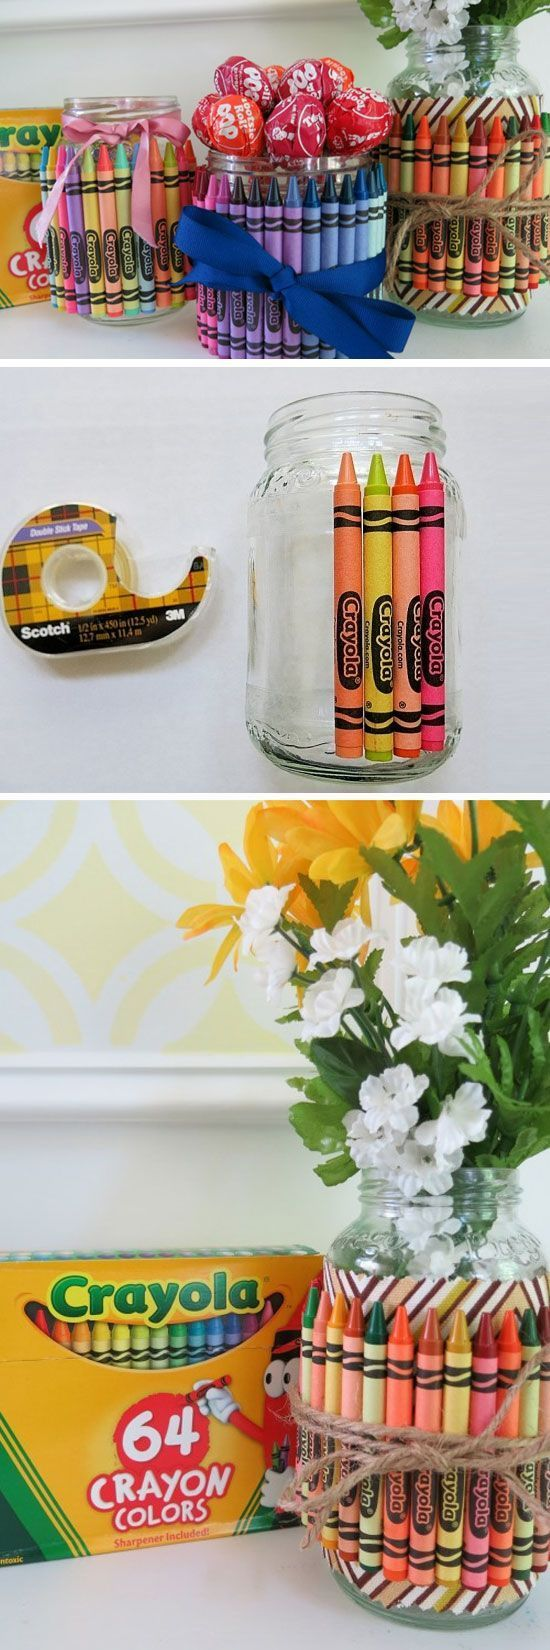 Crayon Container   20 + DIY Christmas Gifts for Teachers From Kids